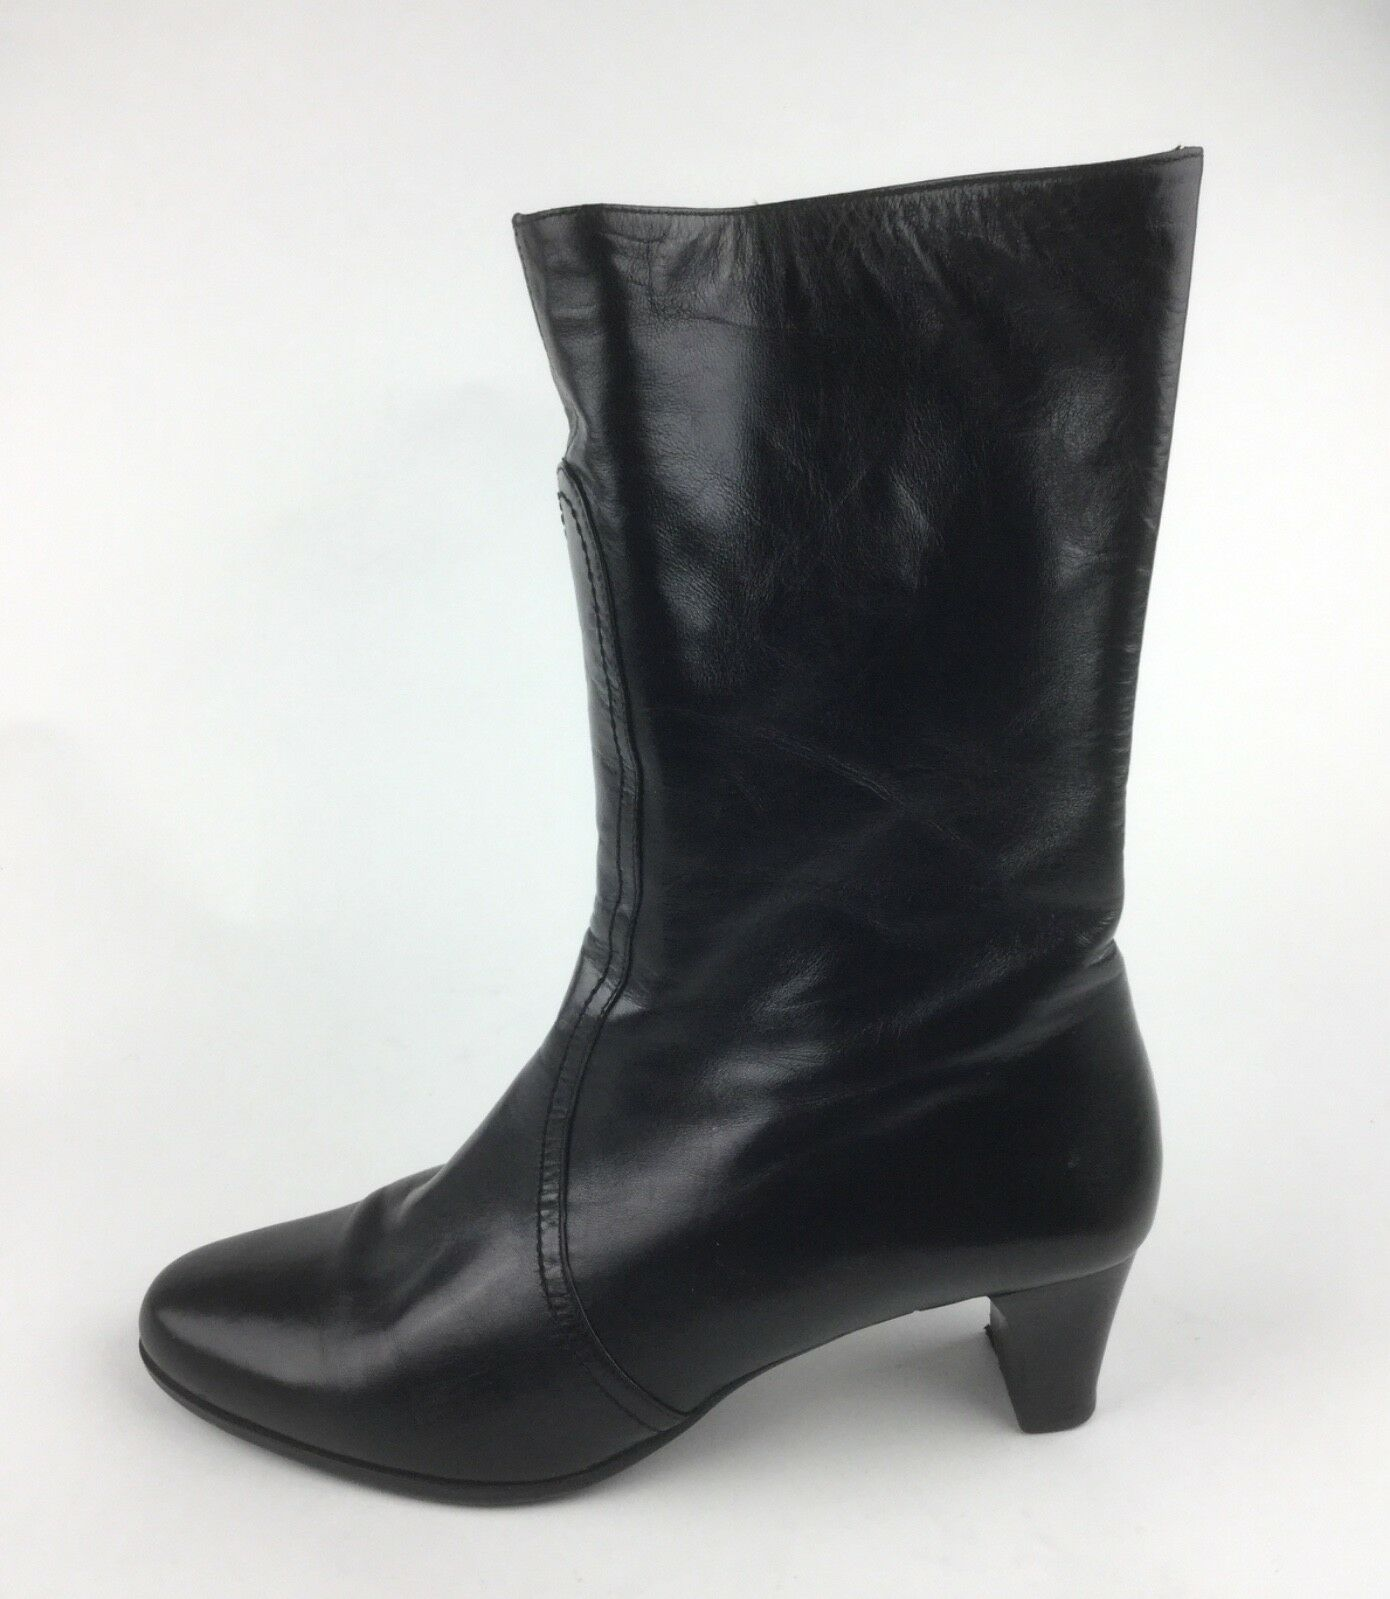 Cole Haan Womens Black Leather Boots Heels Sz US US US 7.5 b6aa92